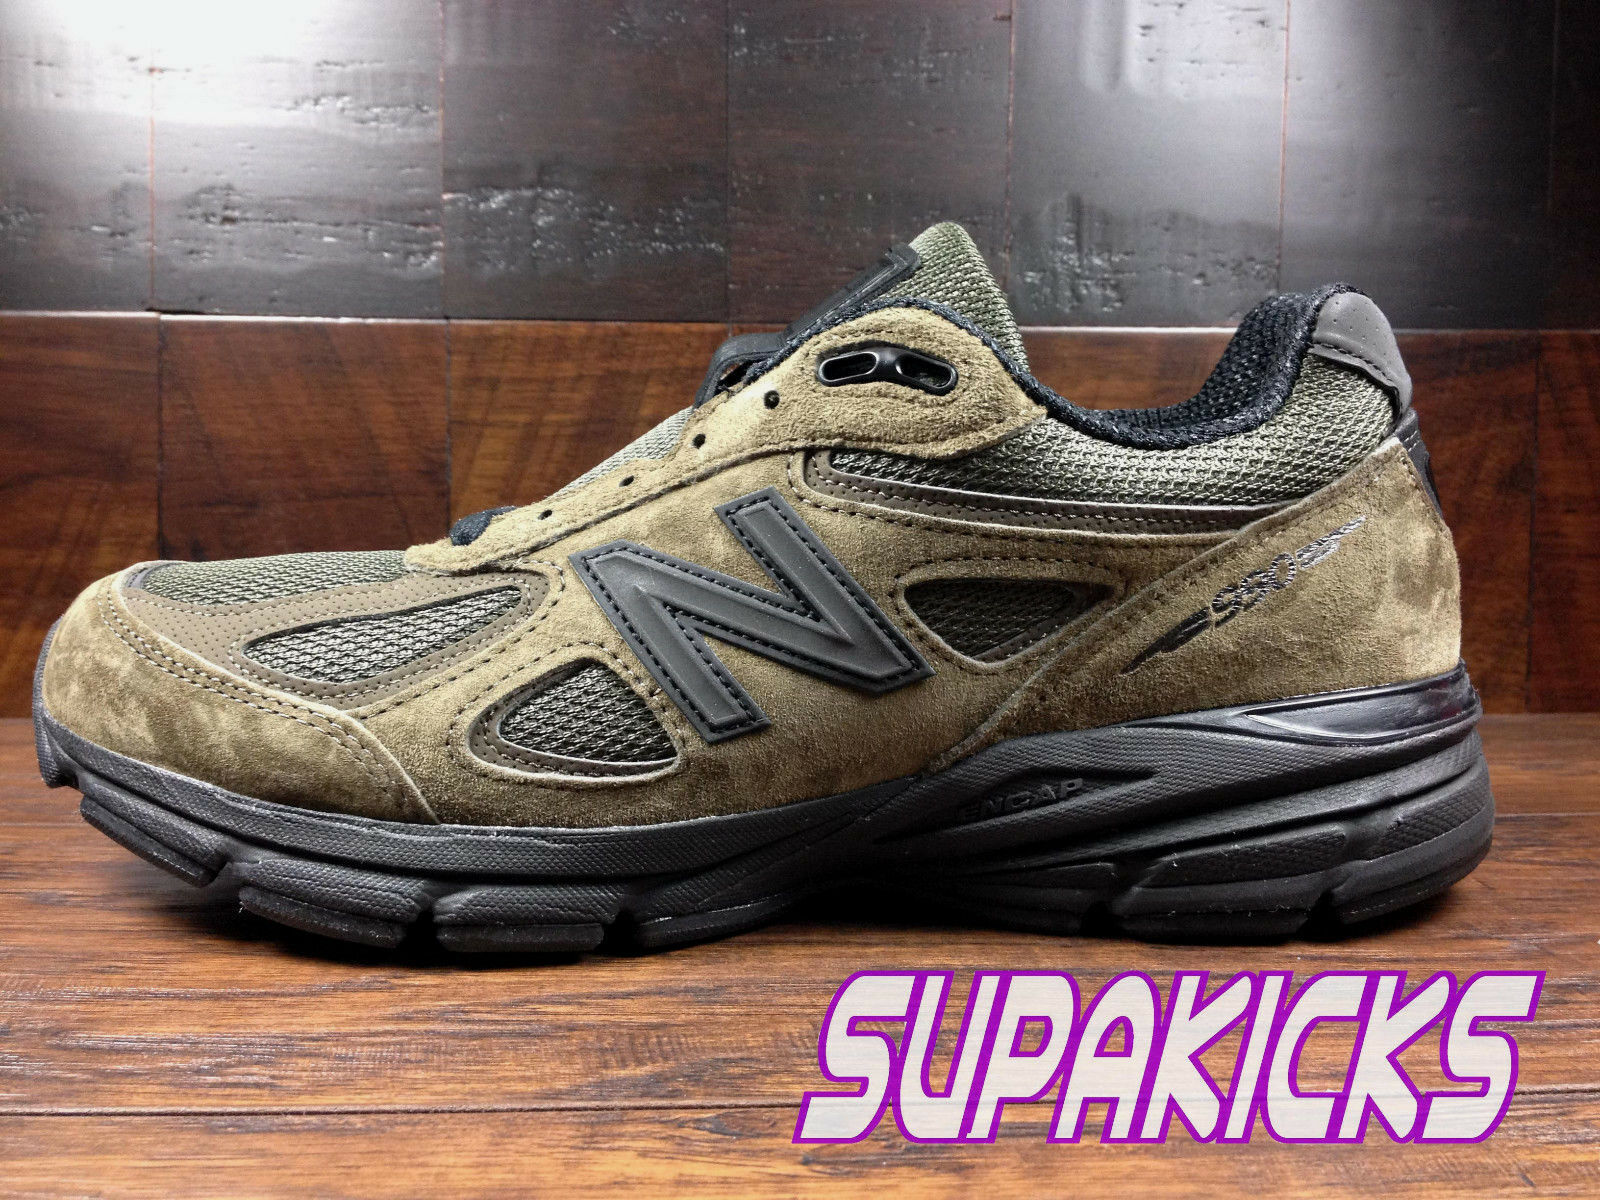 New balance m990mg4 (militär - grün). 990v4 made in in in usa läuft bei 8 - 13 ac393a